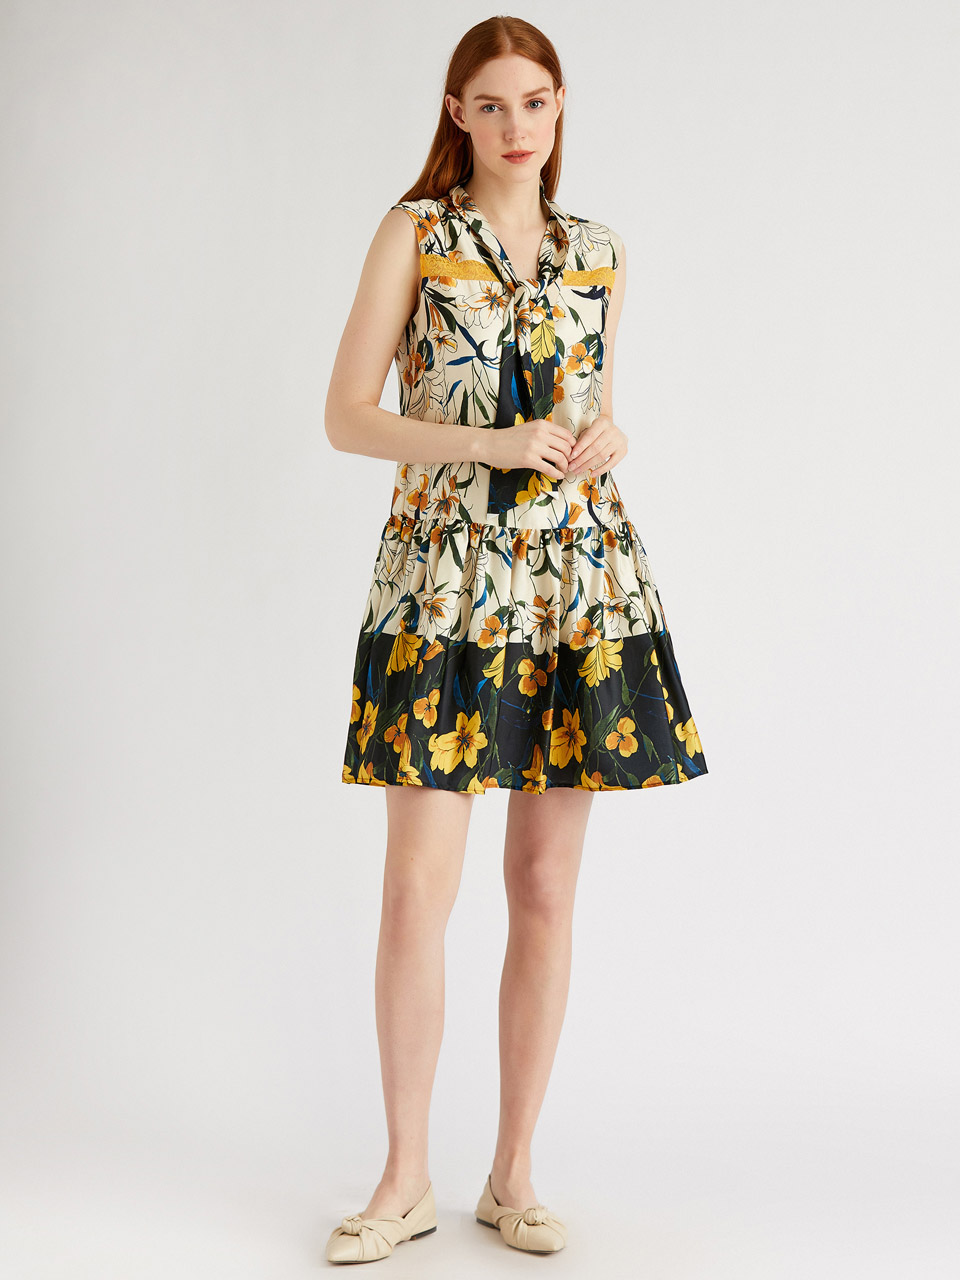 Tie Neck Floral Patterned Mini Dress